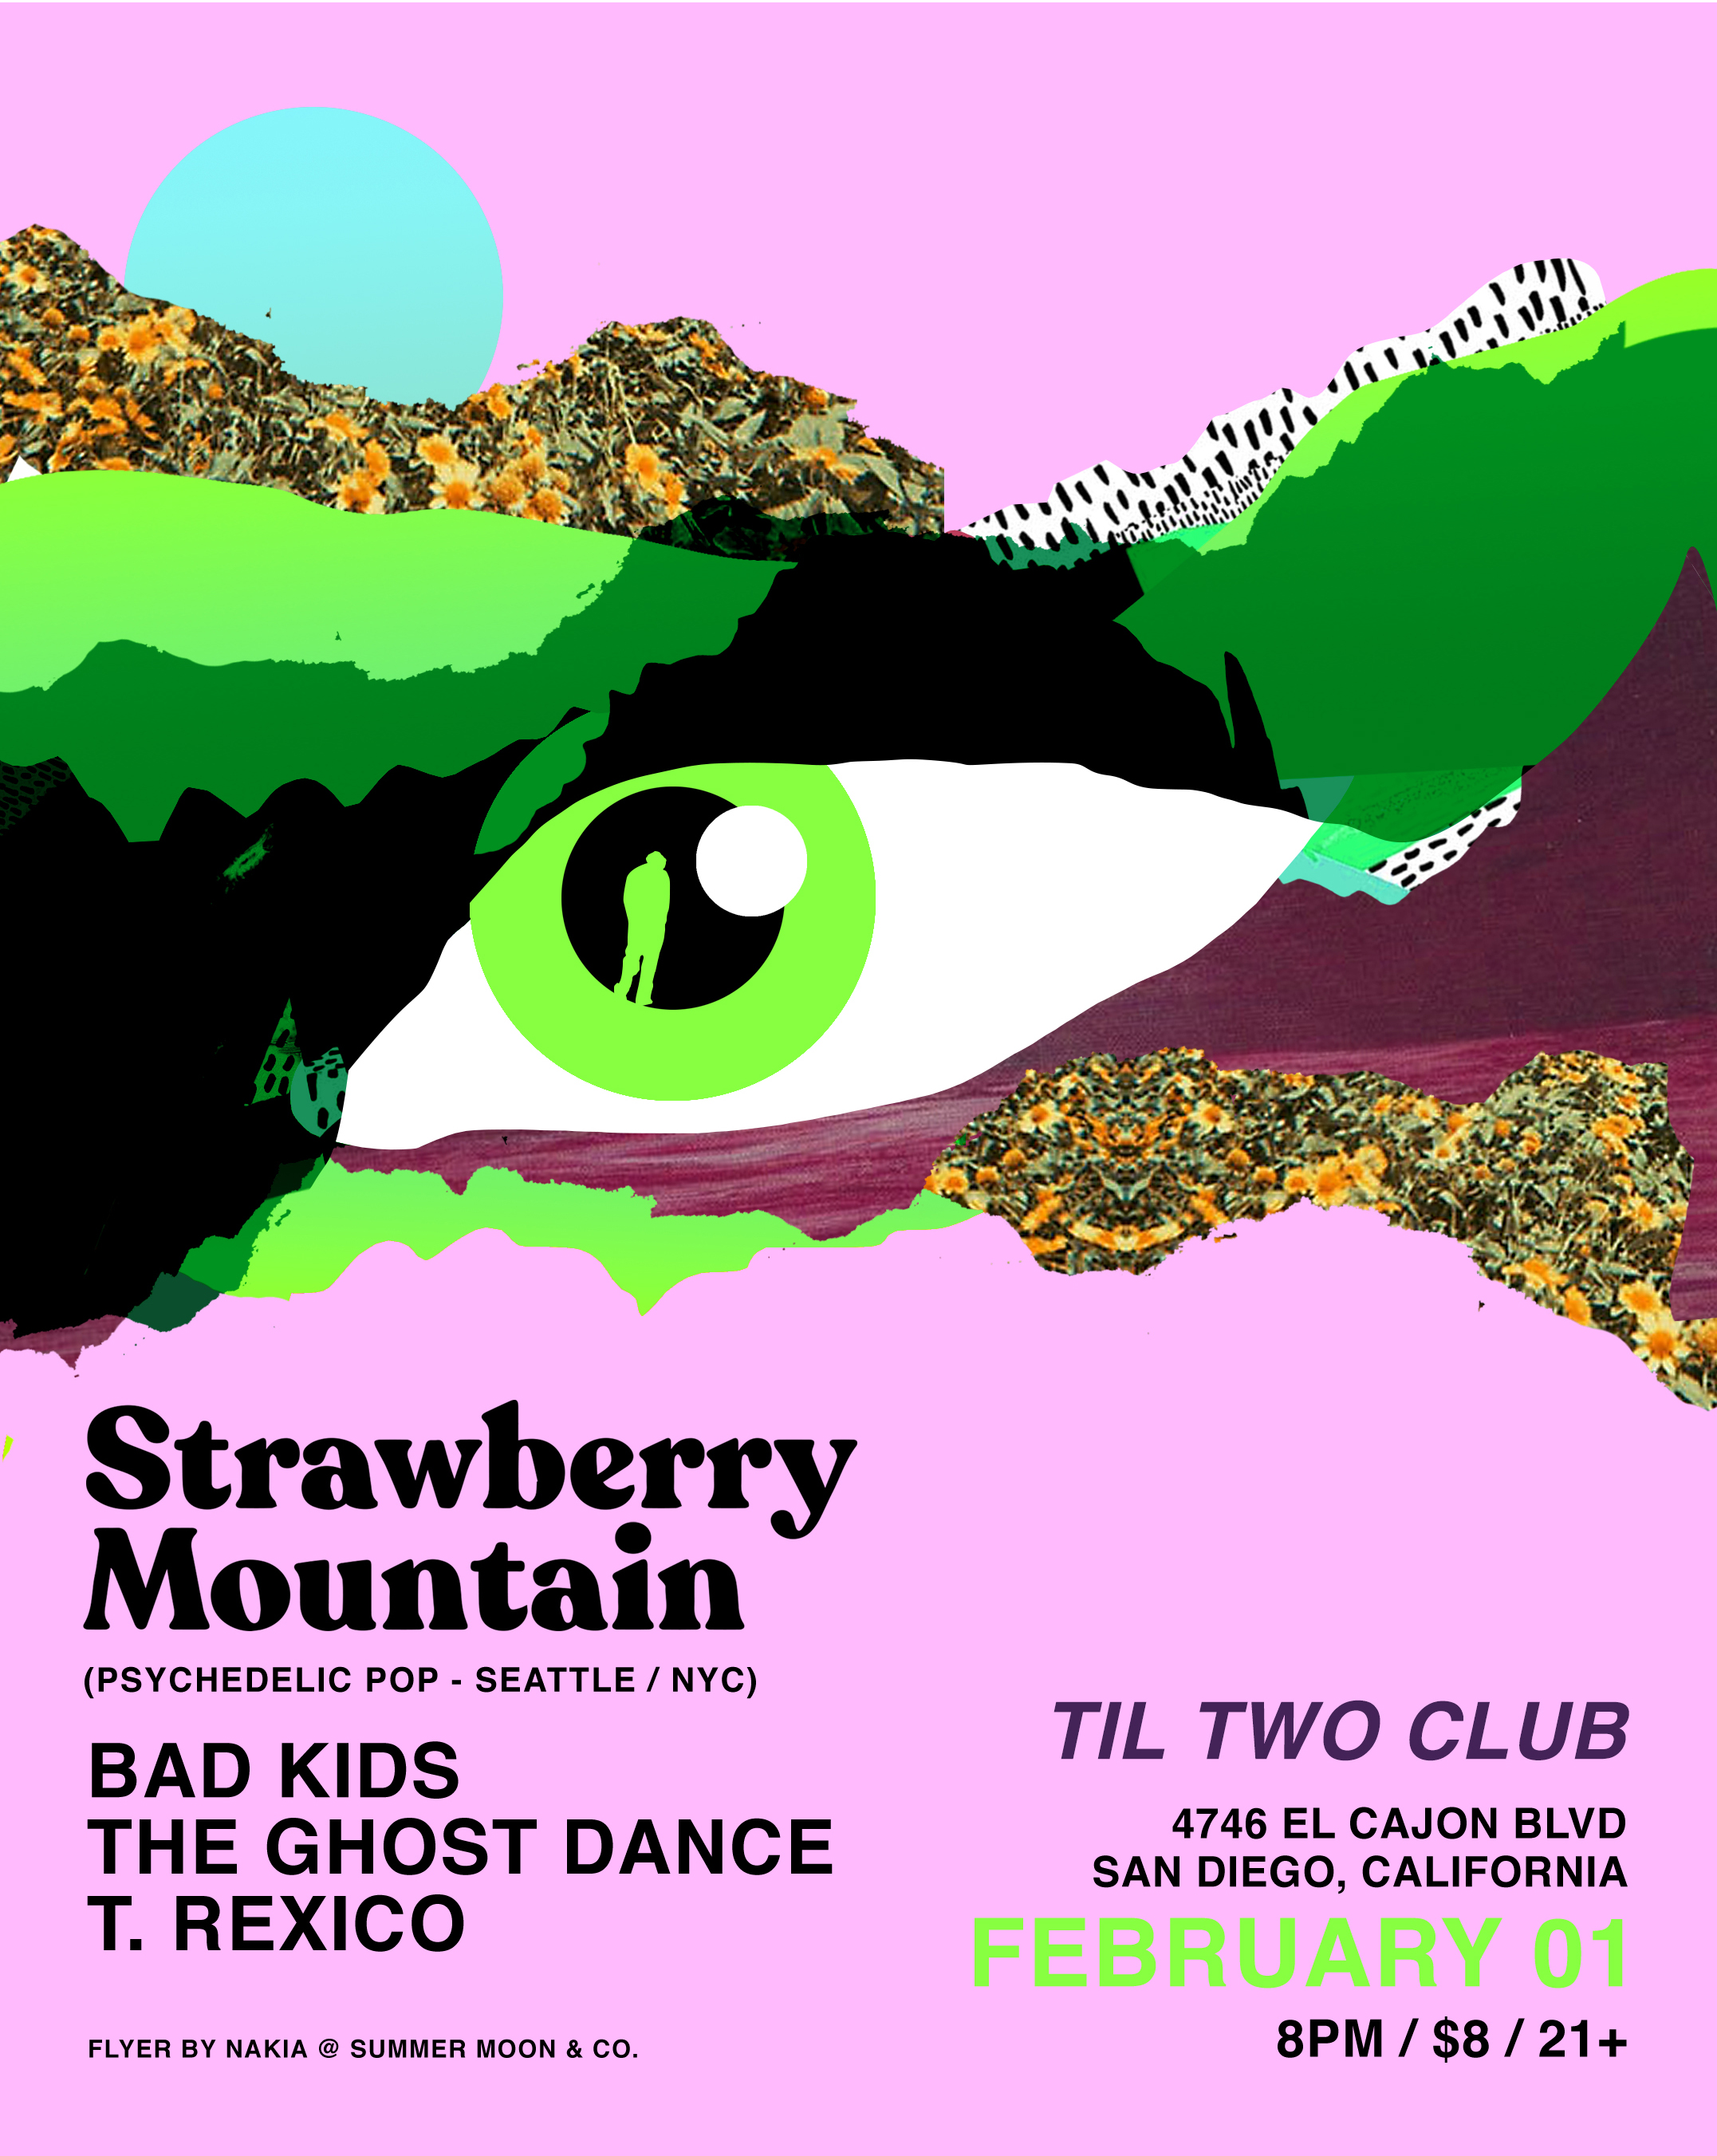 Strawberry Mountain_SAN DIEGO.jpg